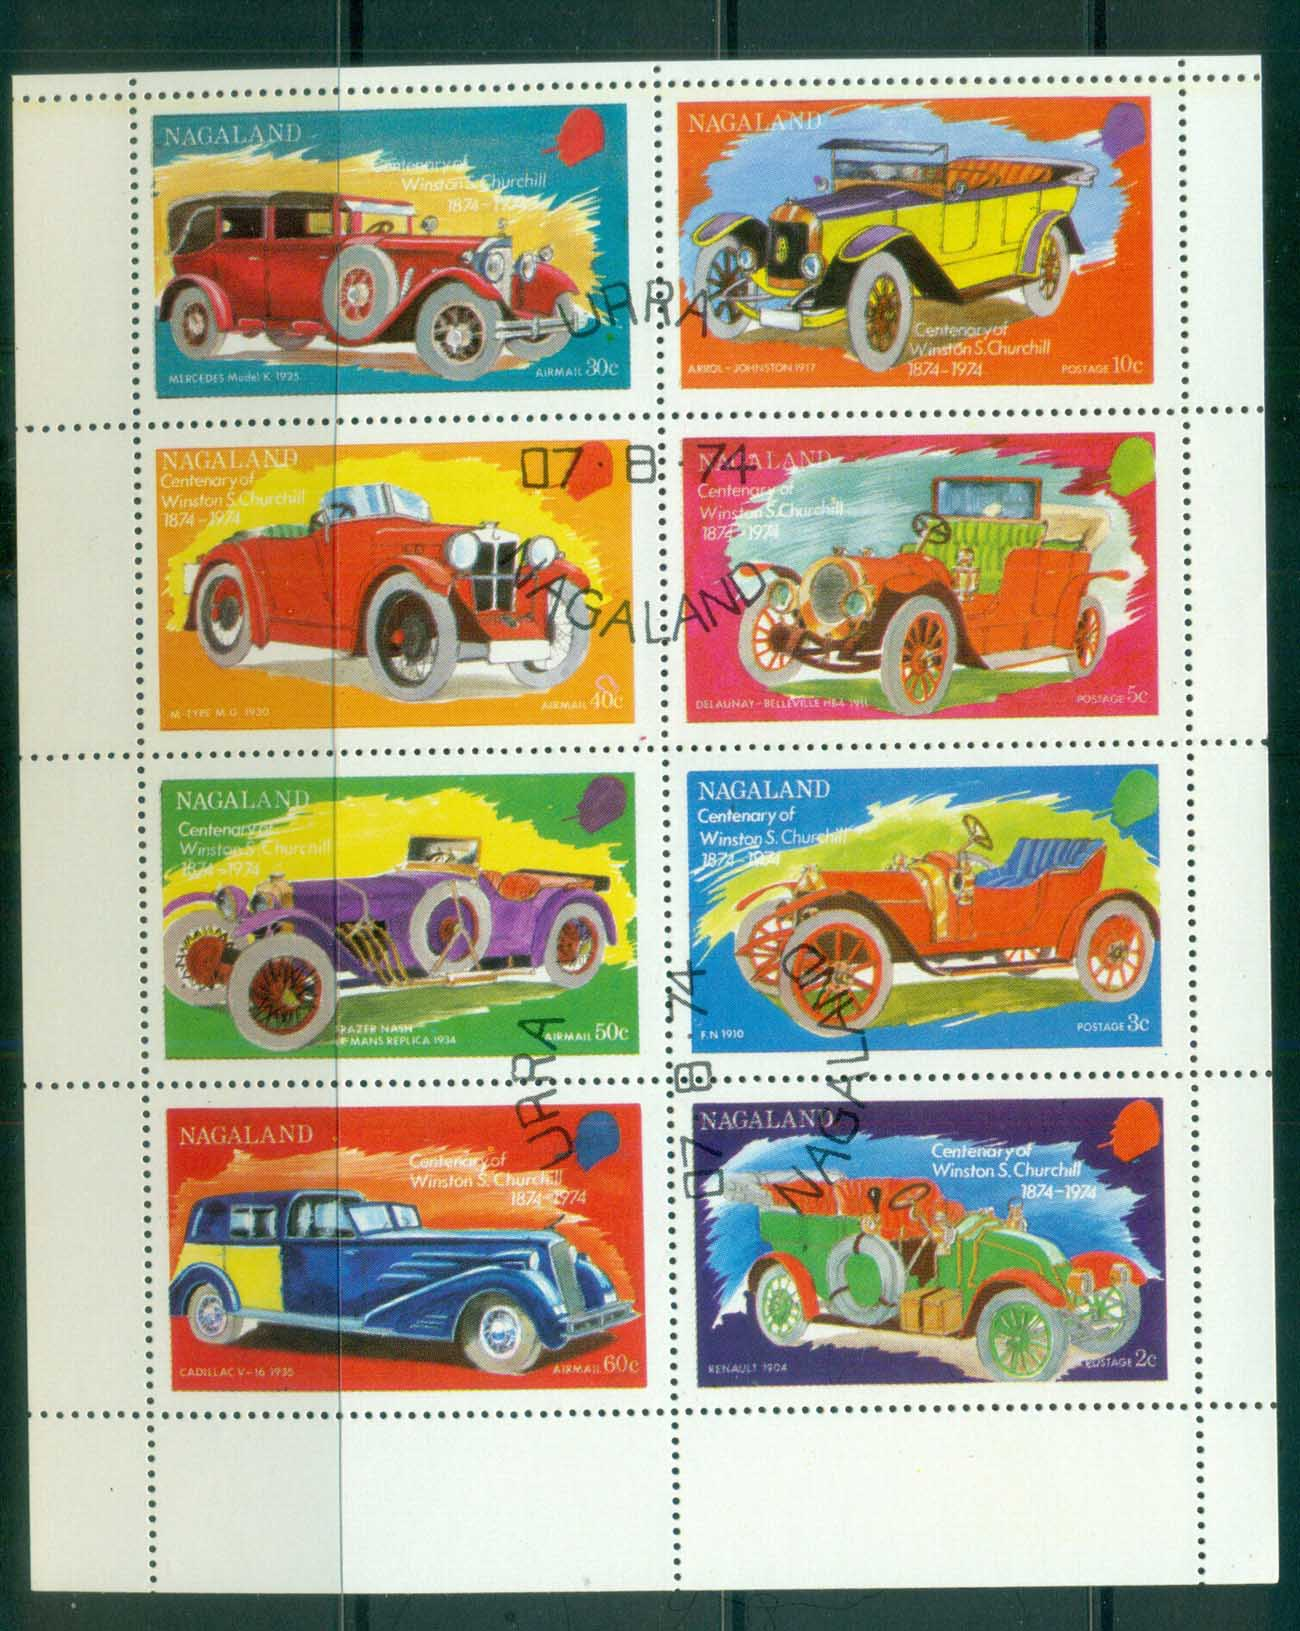 Nagaland 1974 Vintage Cars Sheetlet CTO lot81716